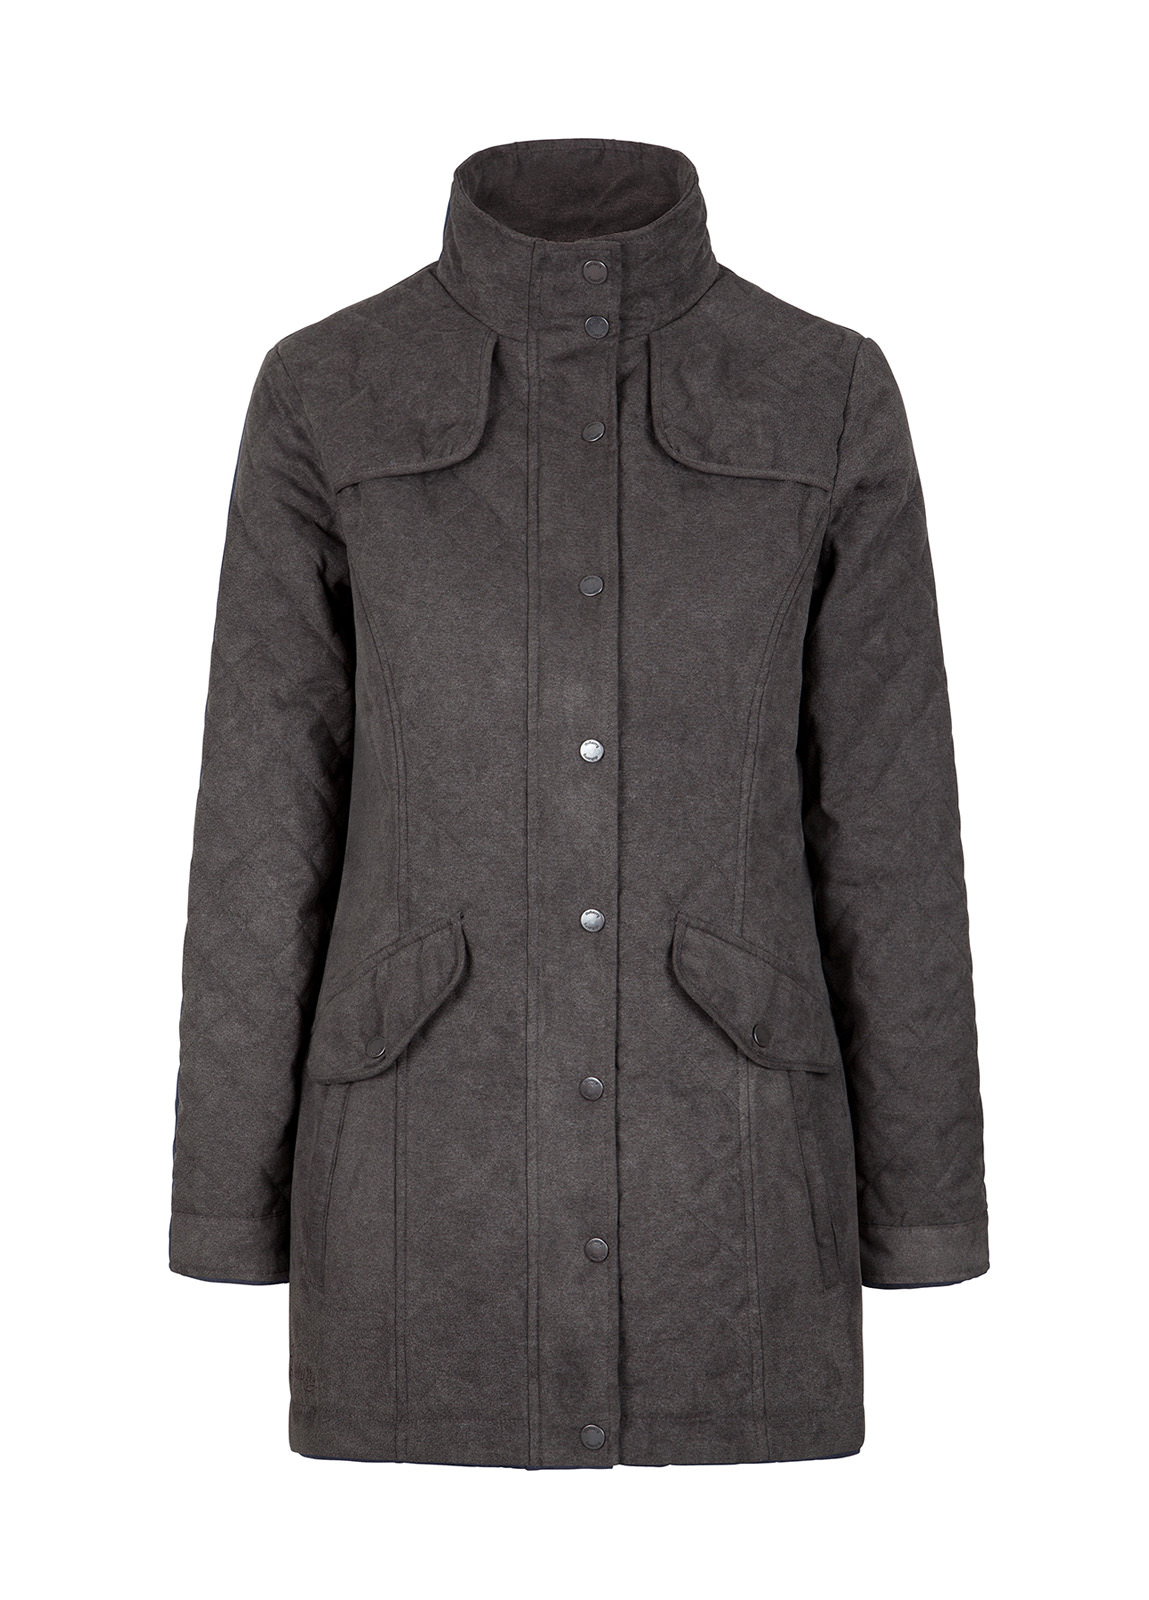 Dubarry_Kanturk Womens Quilted Coat - Graphite_Image_2